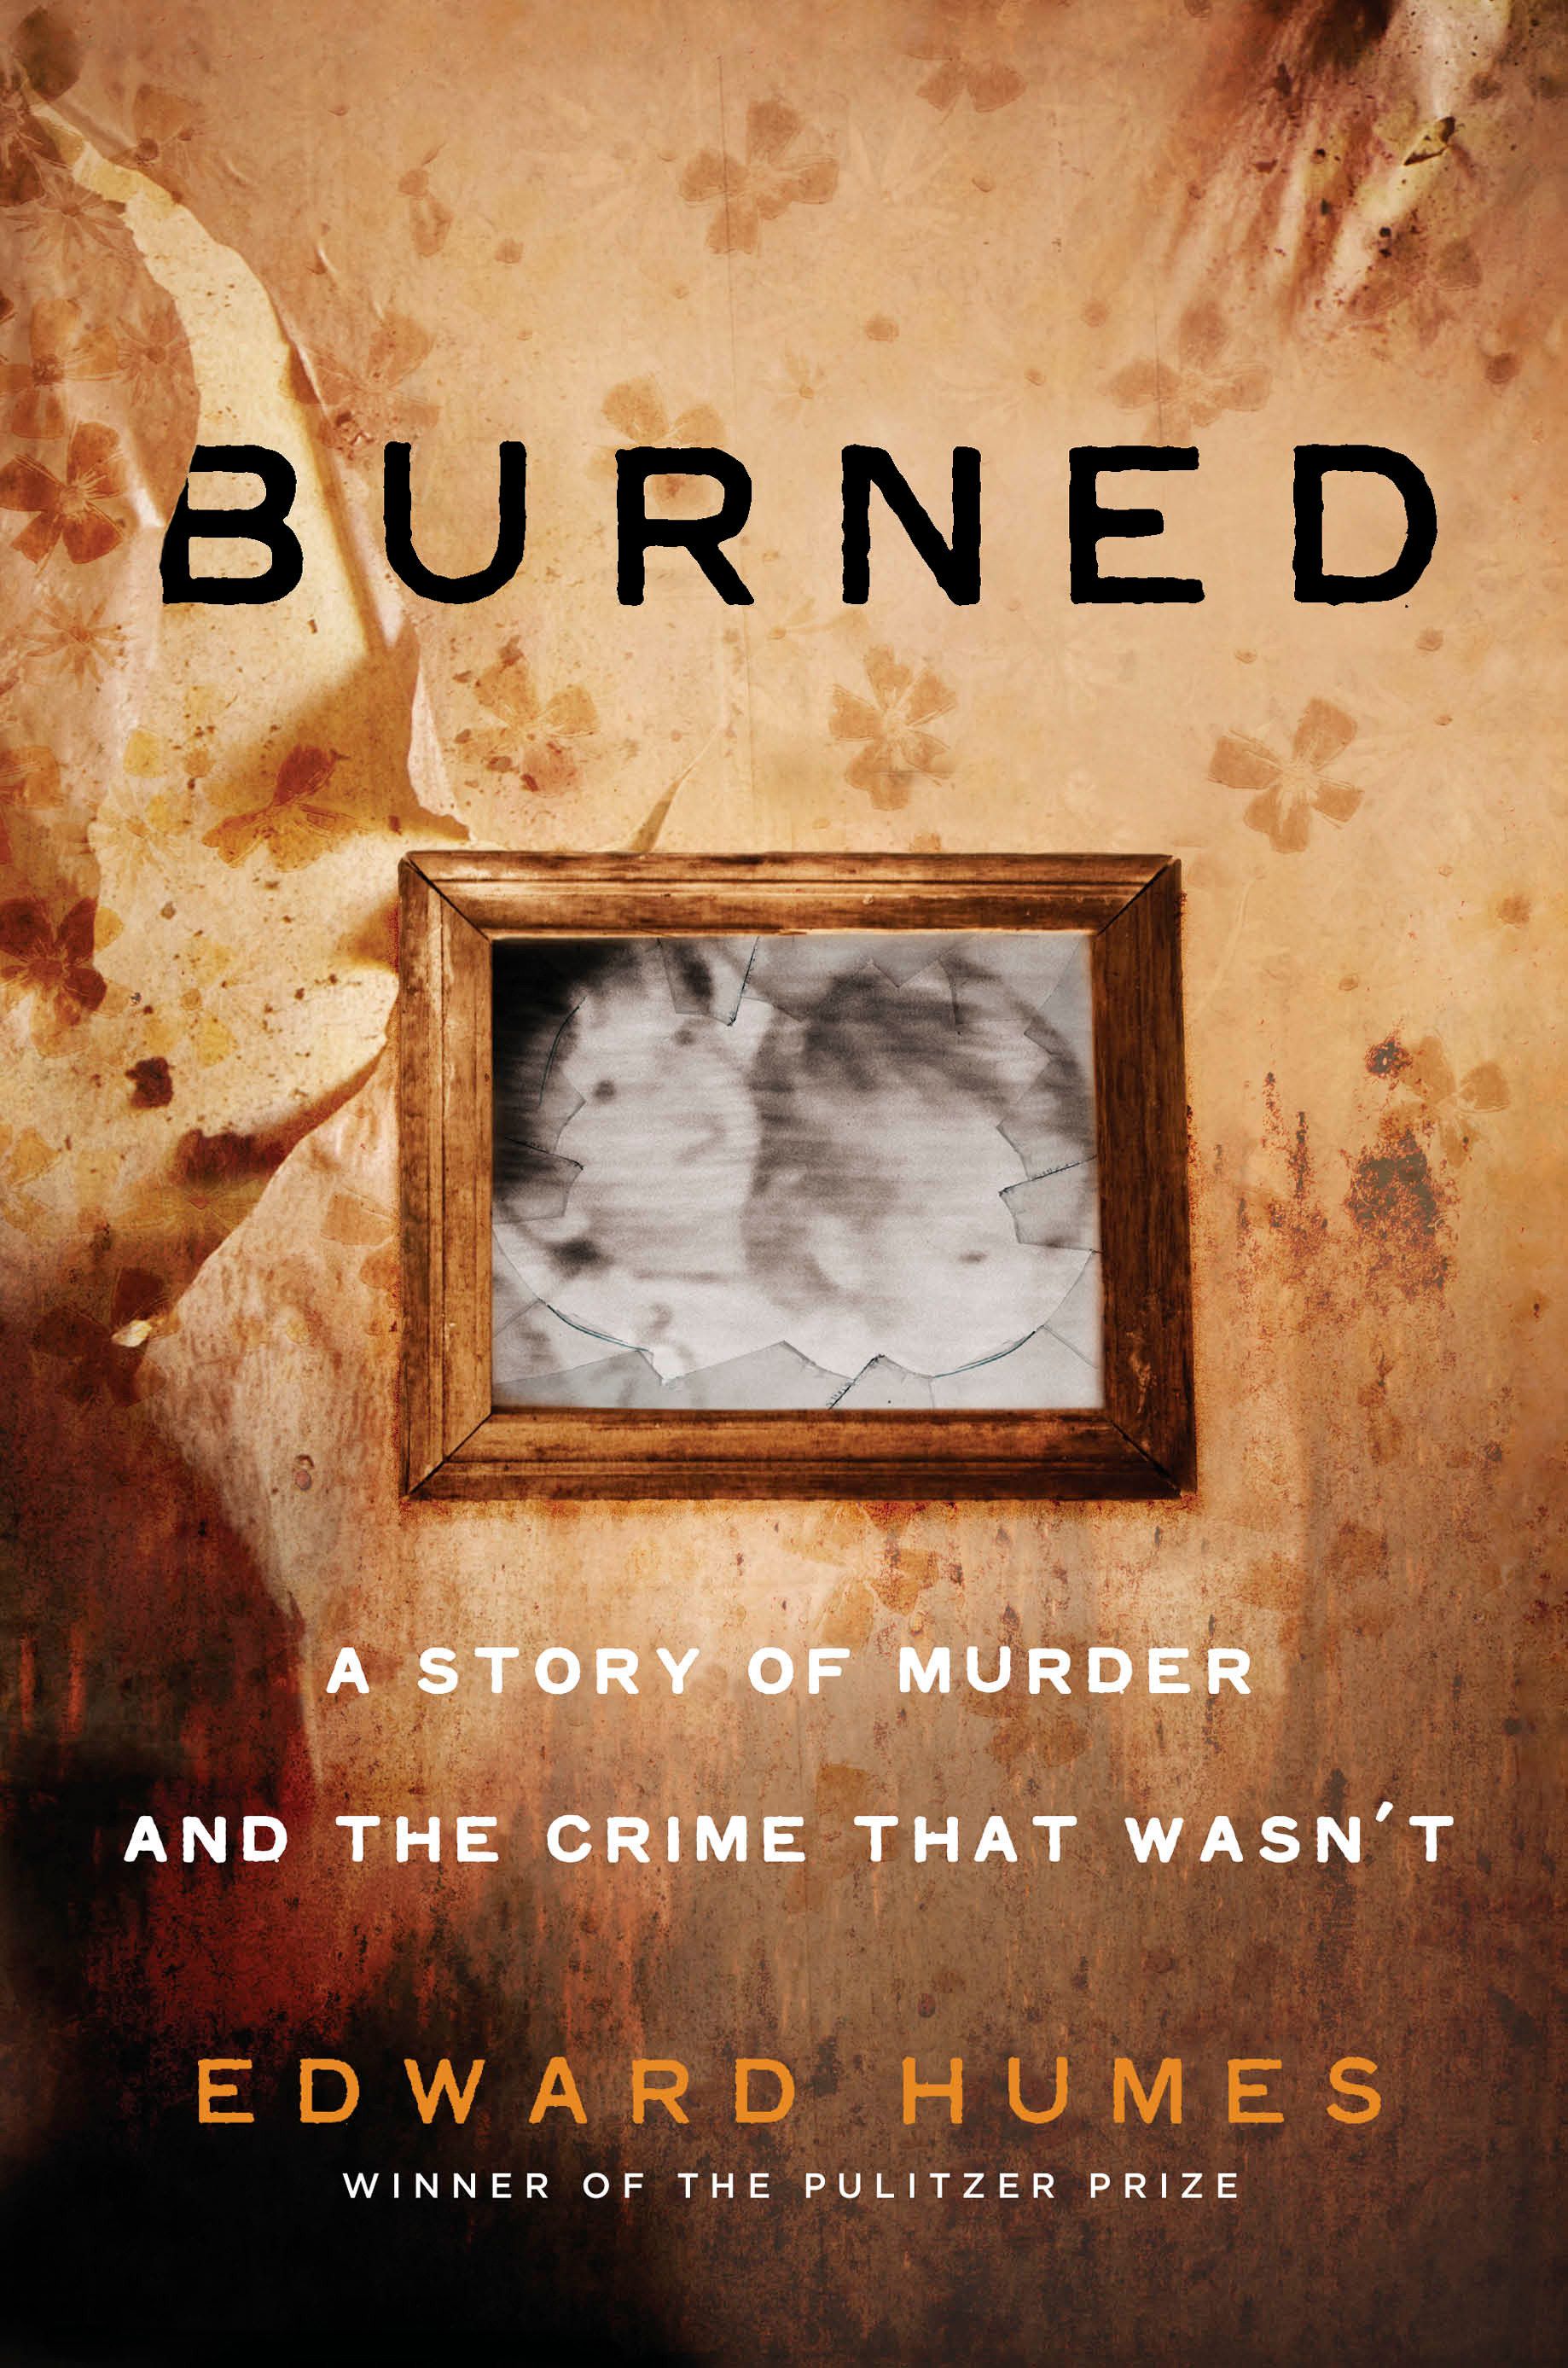 Burned A Story of Murder and the Crime That Wasn't